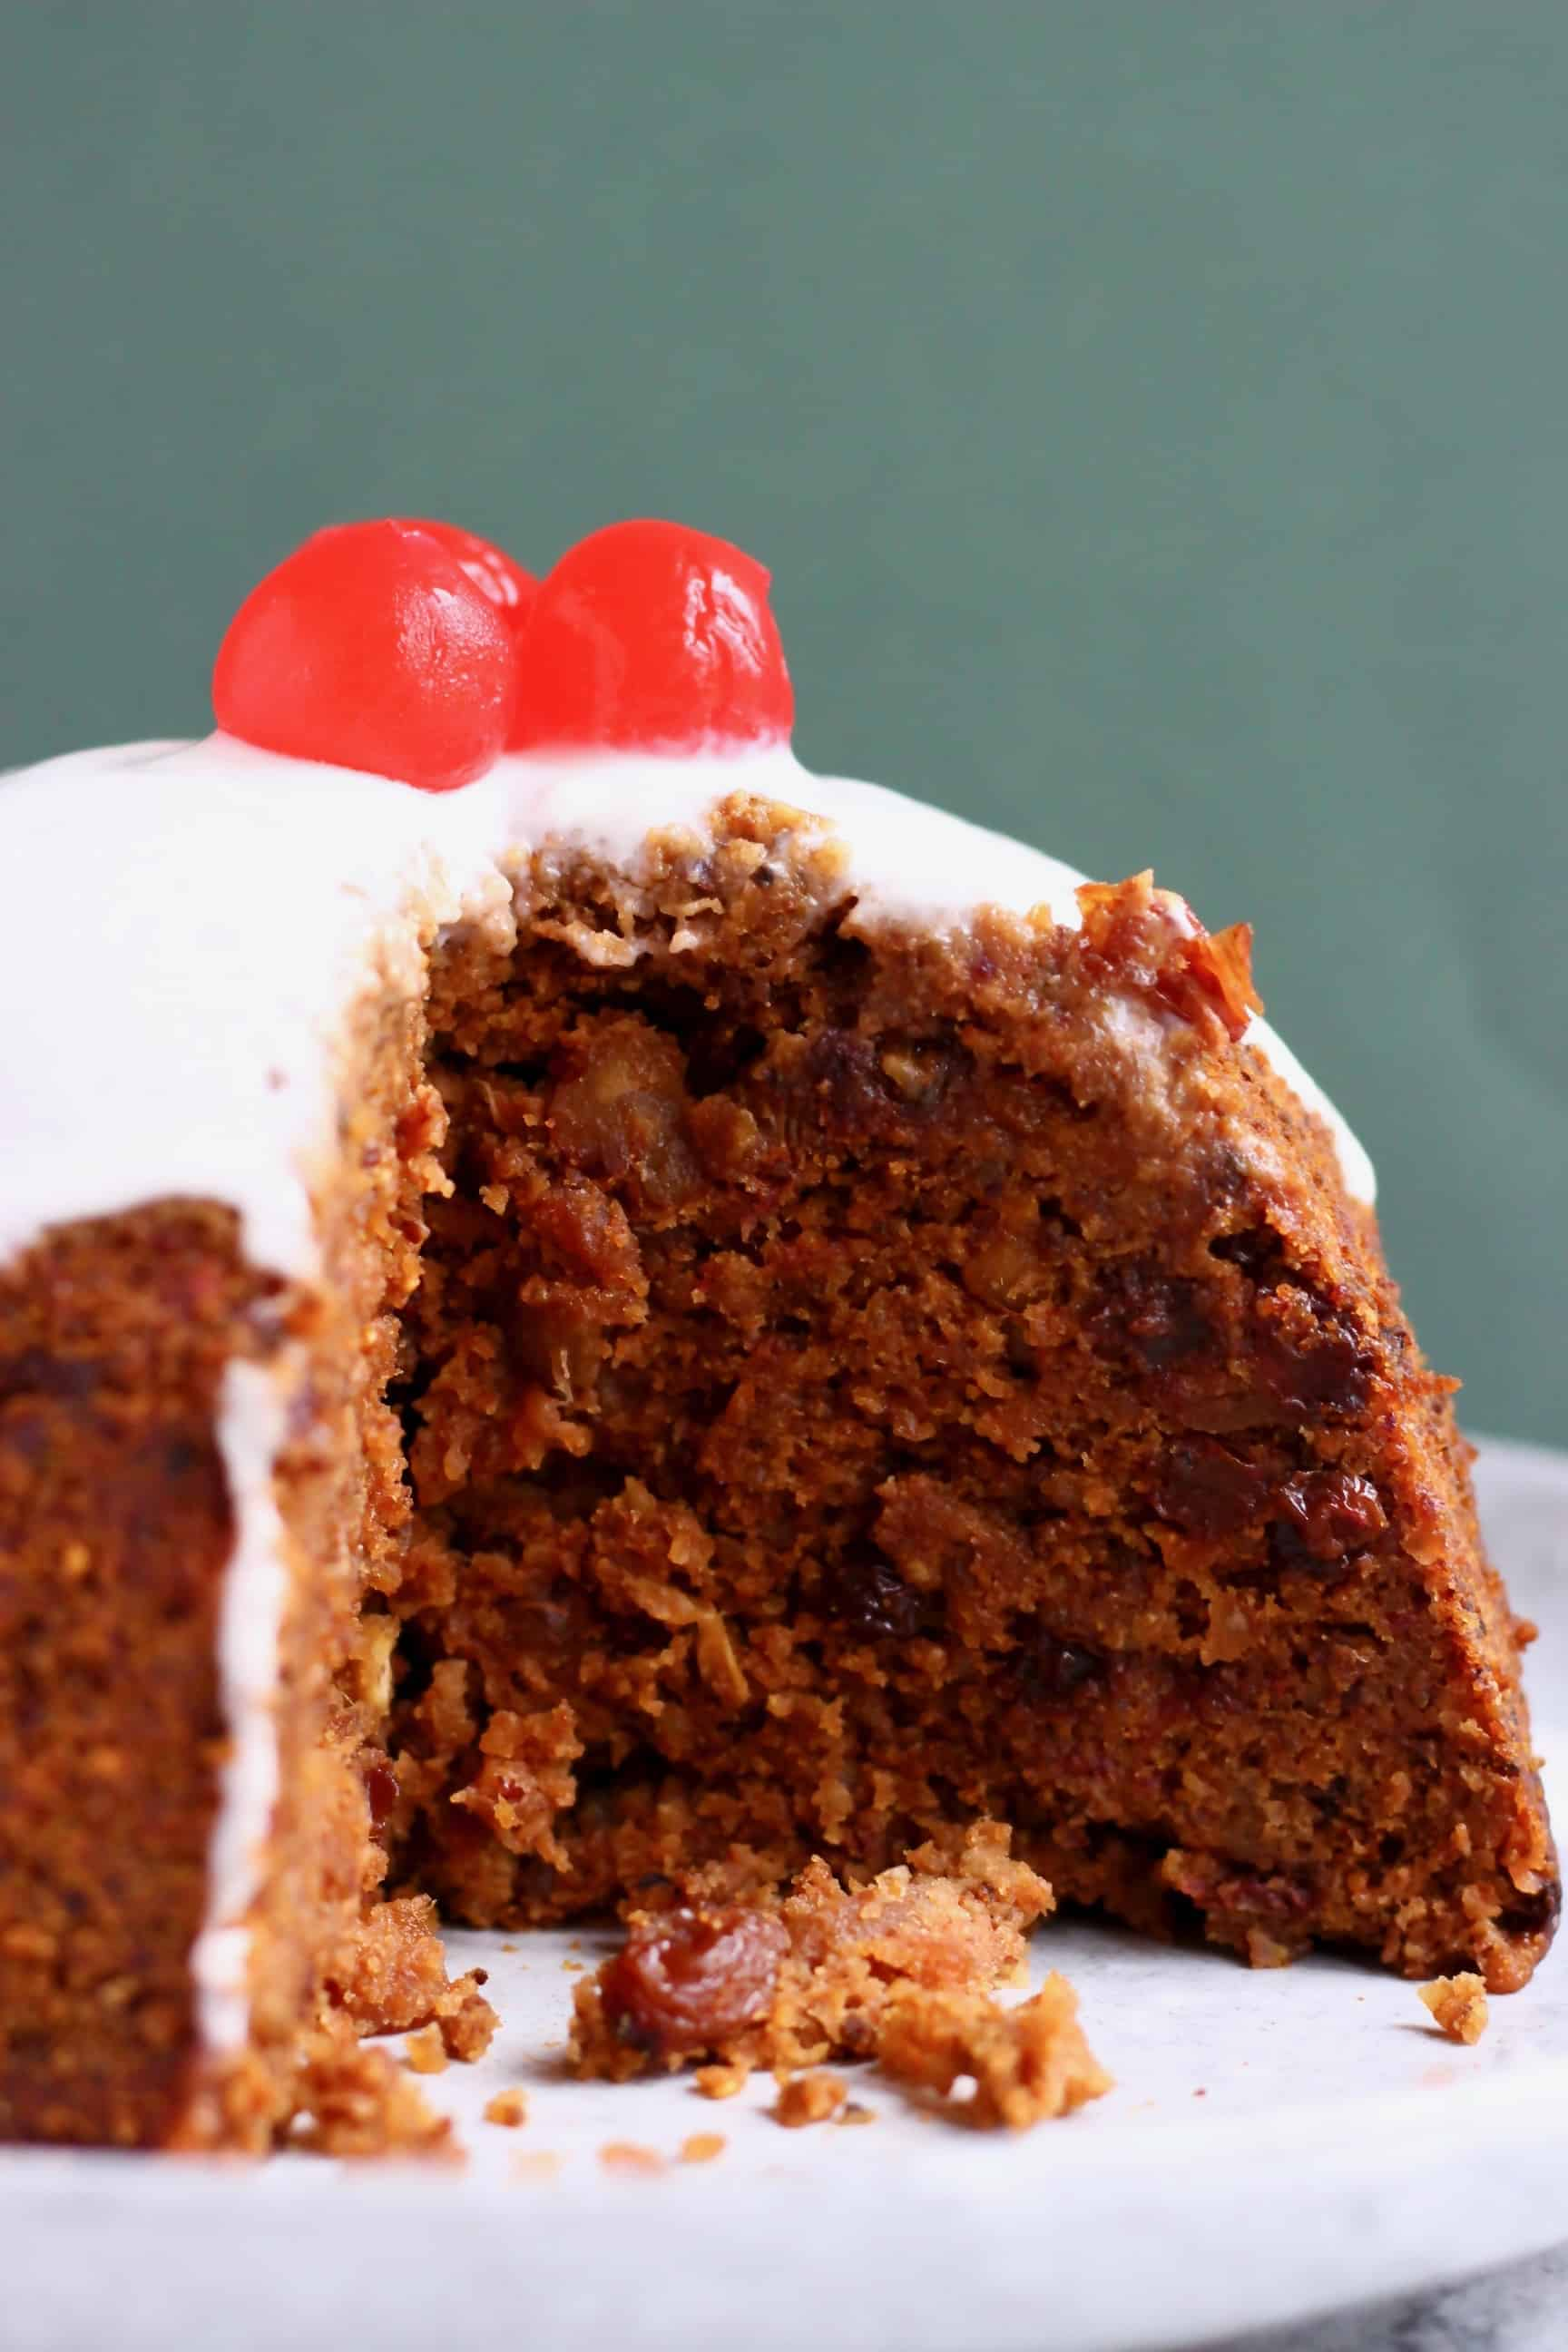 A round Christmas pudding with white cream poured over it topped with three bright red cherries